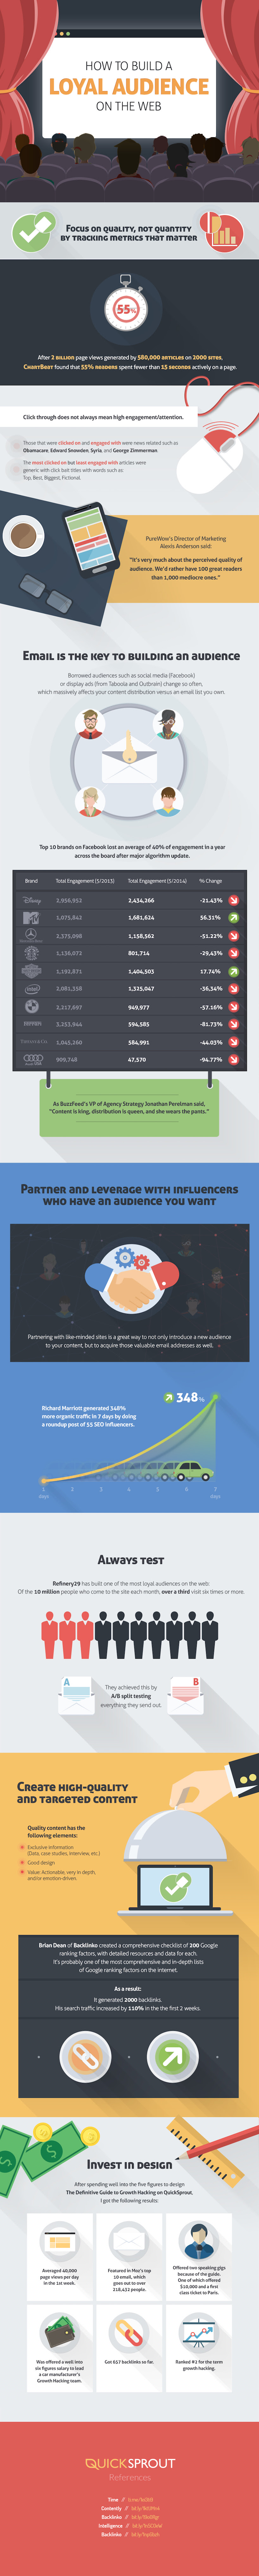 How to Build a Loyal Audience on the Web